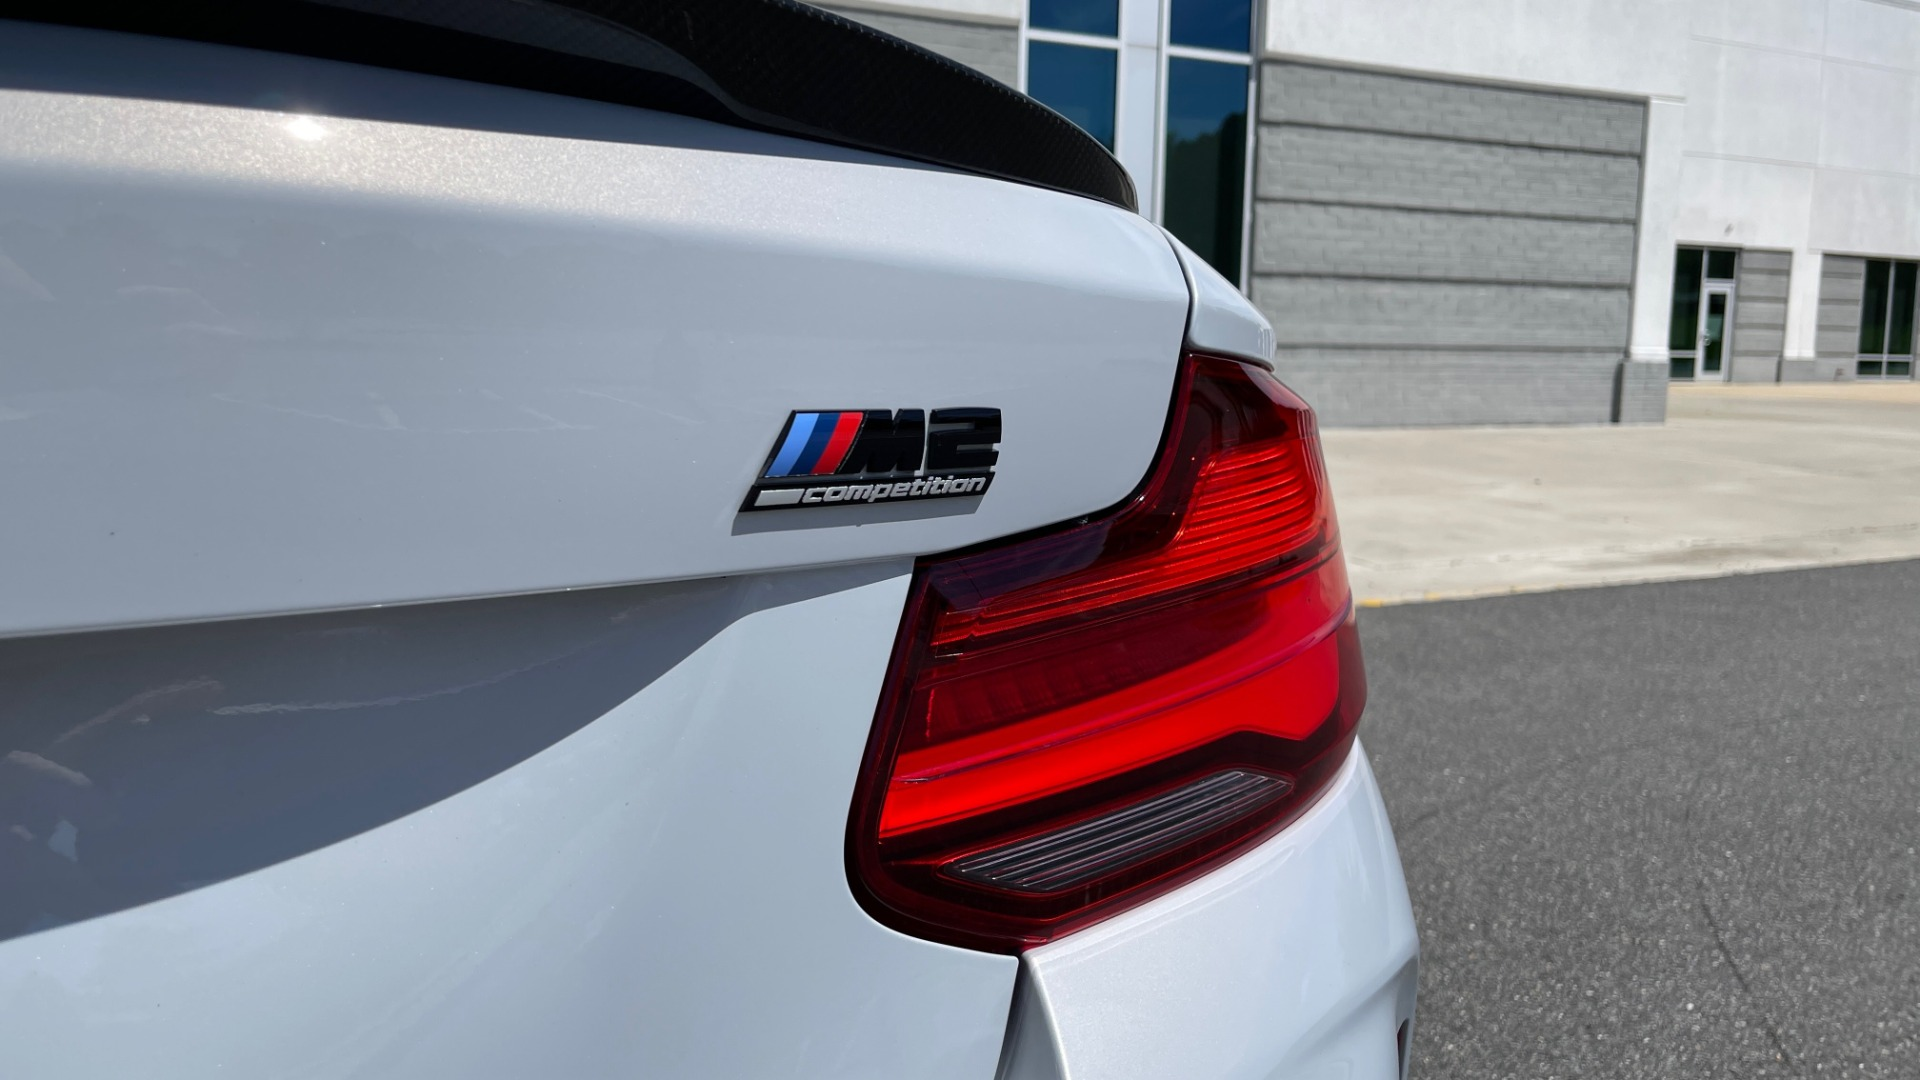 Used 2020 BMW M2 COMPETITION 405HP / COUPE / MANUAL / NAV / H/K SOUND / REARVIEW for sale $64,388 at Formula Imports in Charlotte NC 28227 24